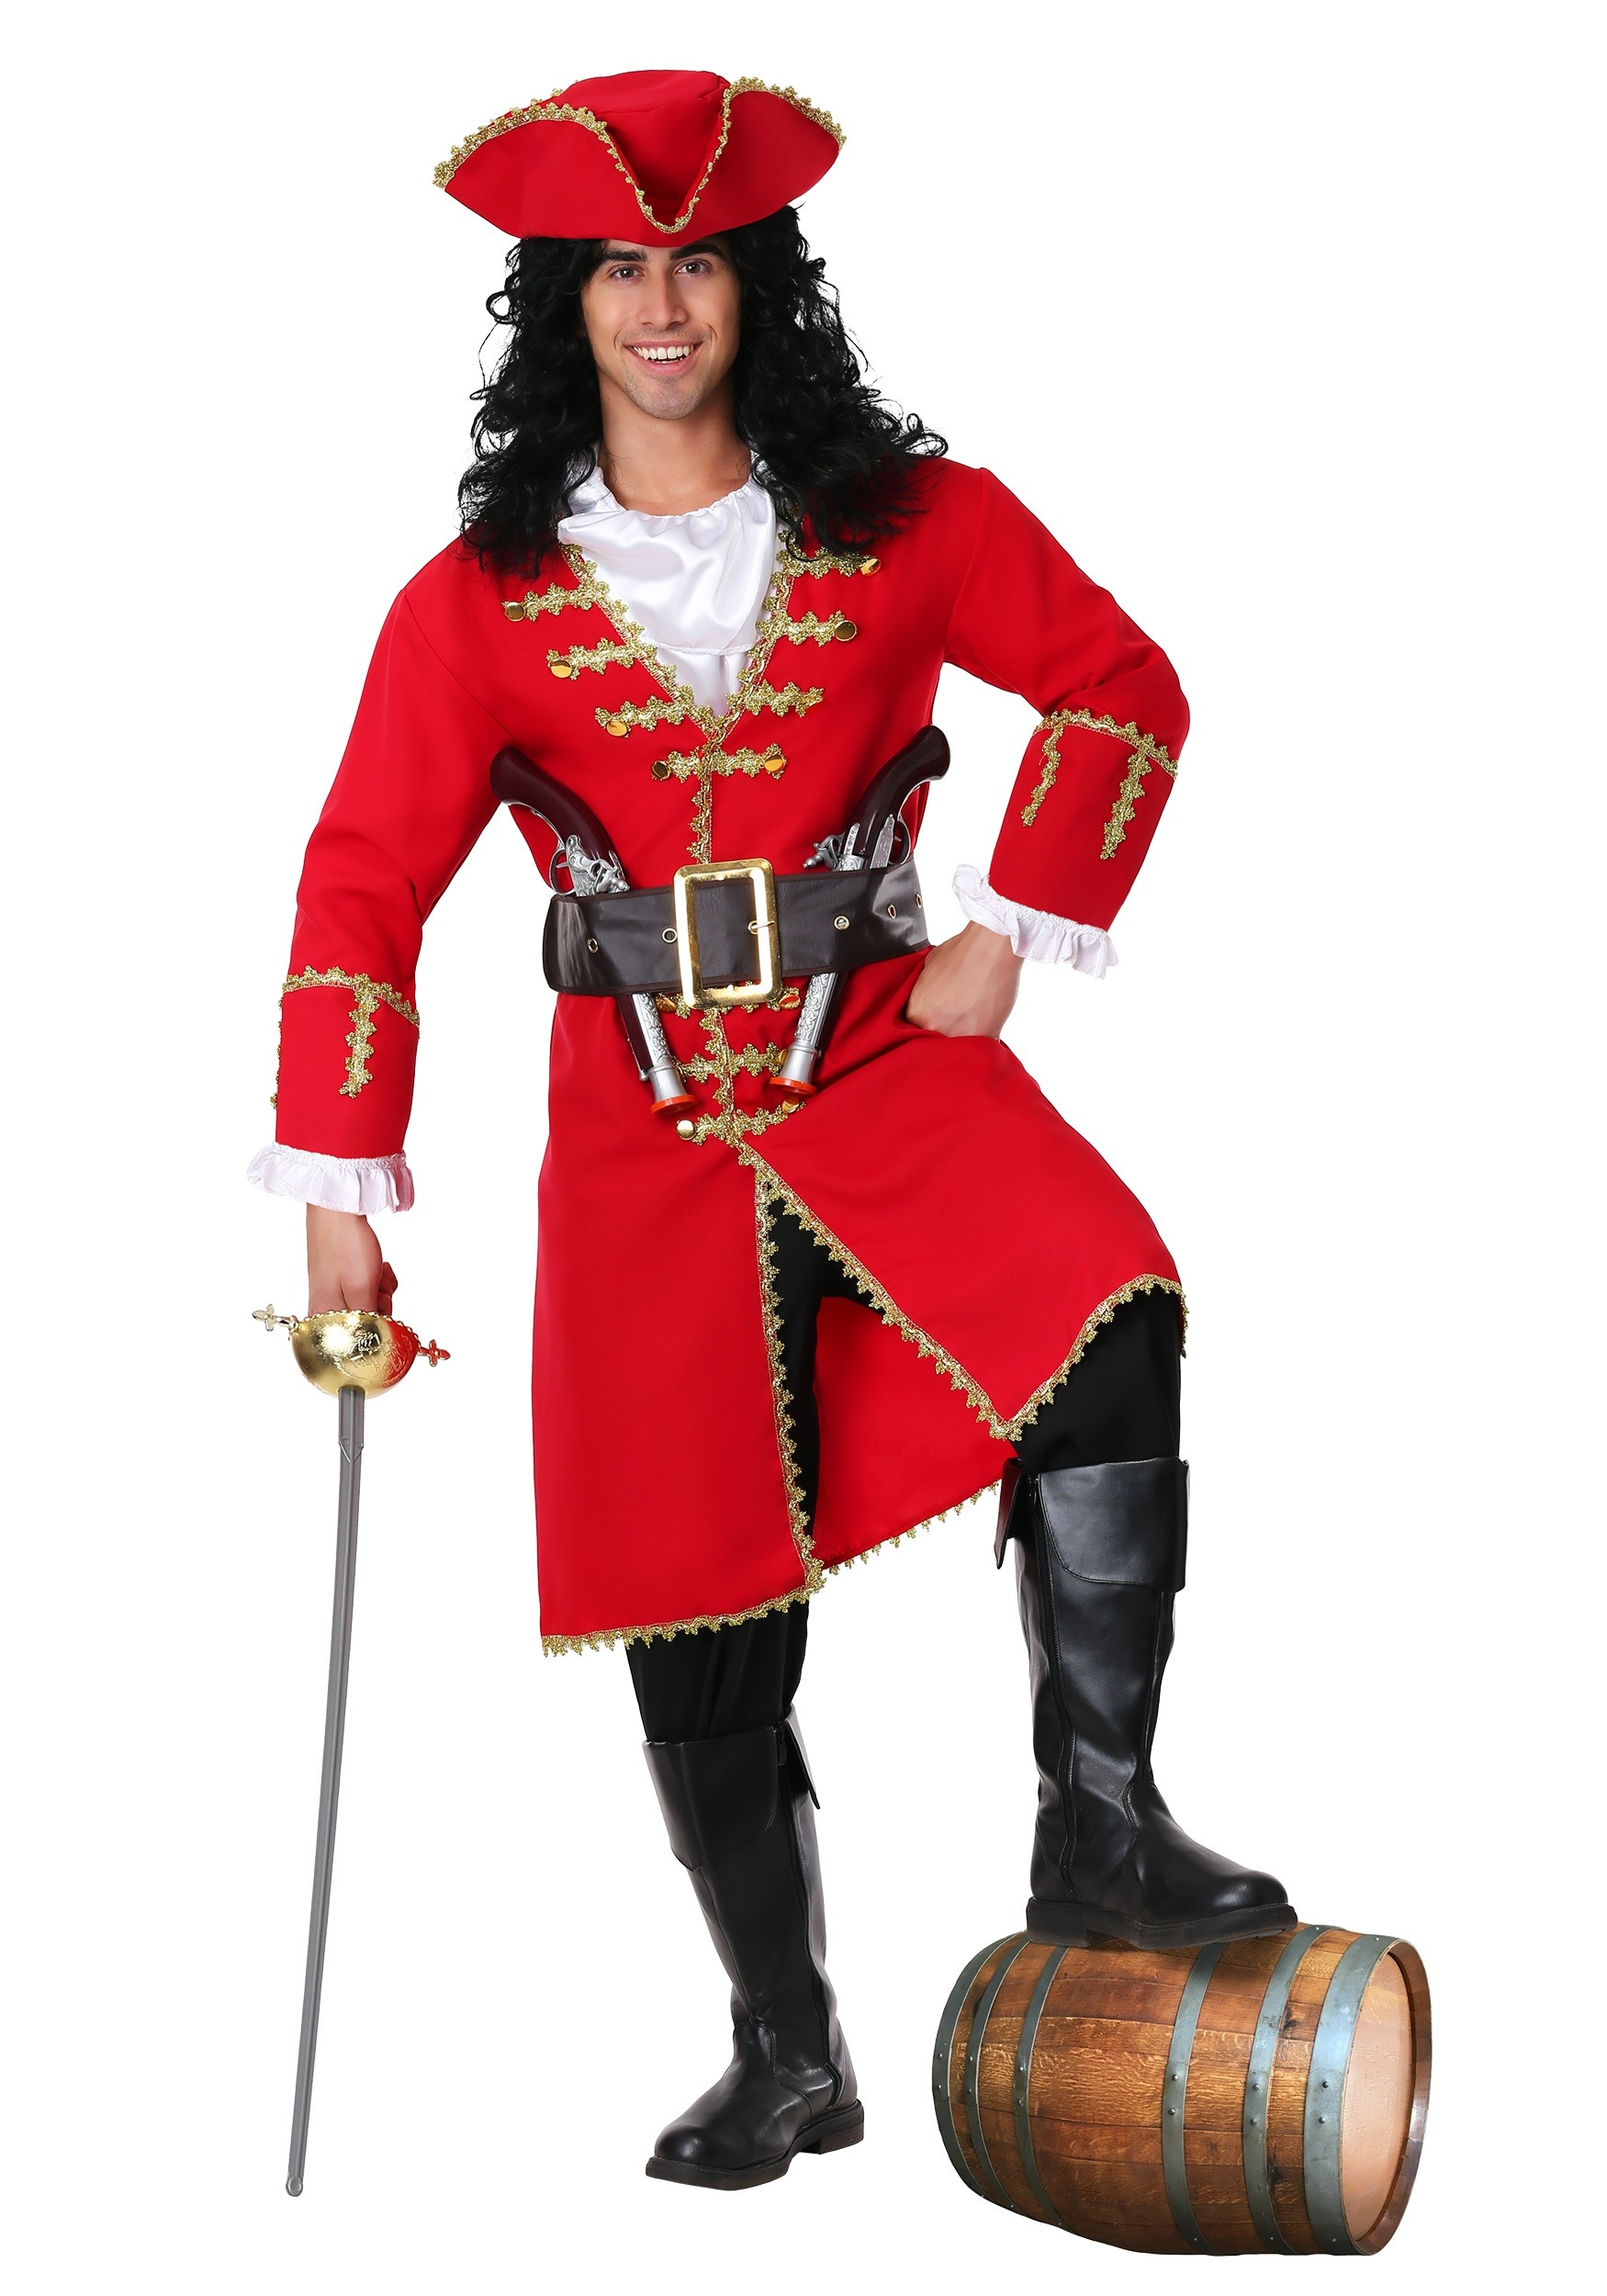 male halloween costume ideas on halloween costume ideas pirate costume ideas adult pirate costumes men - College Halloween Costumes Male